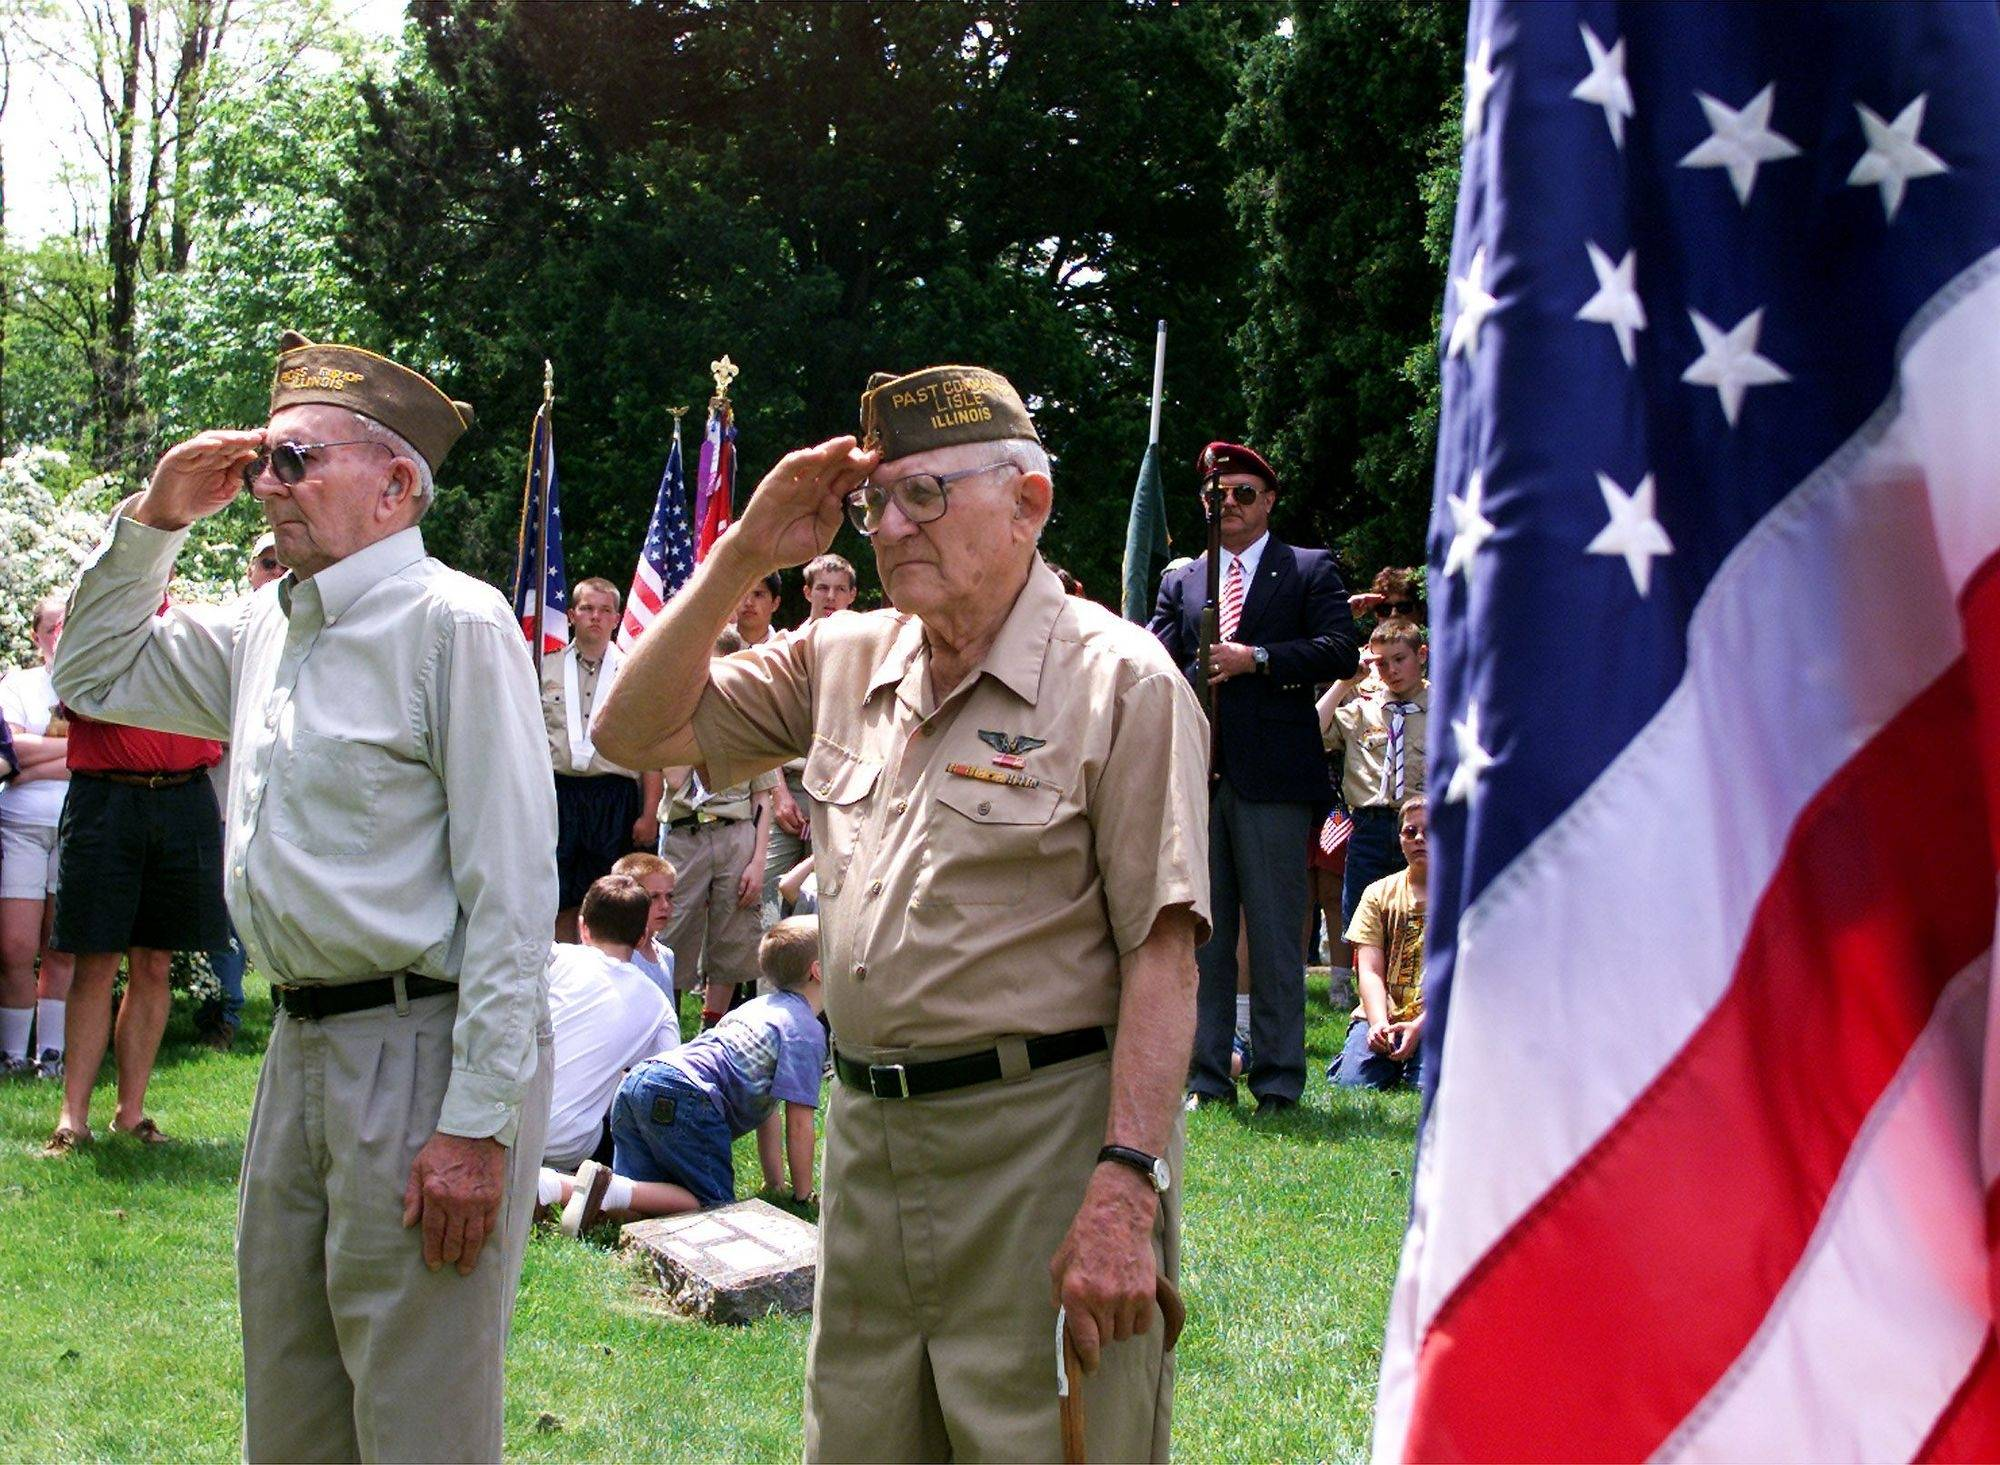 Andy Yender, a charter member of Lisle's VFW post, will take part in the village's Memorial Day Parade and share his experiences in World War II in a discussion Thursday, May 27.